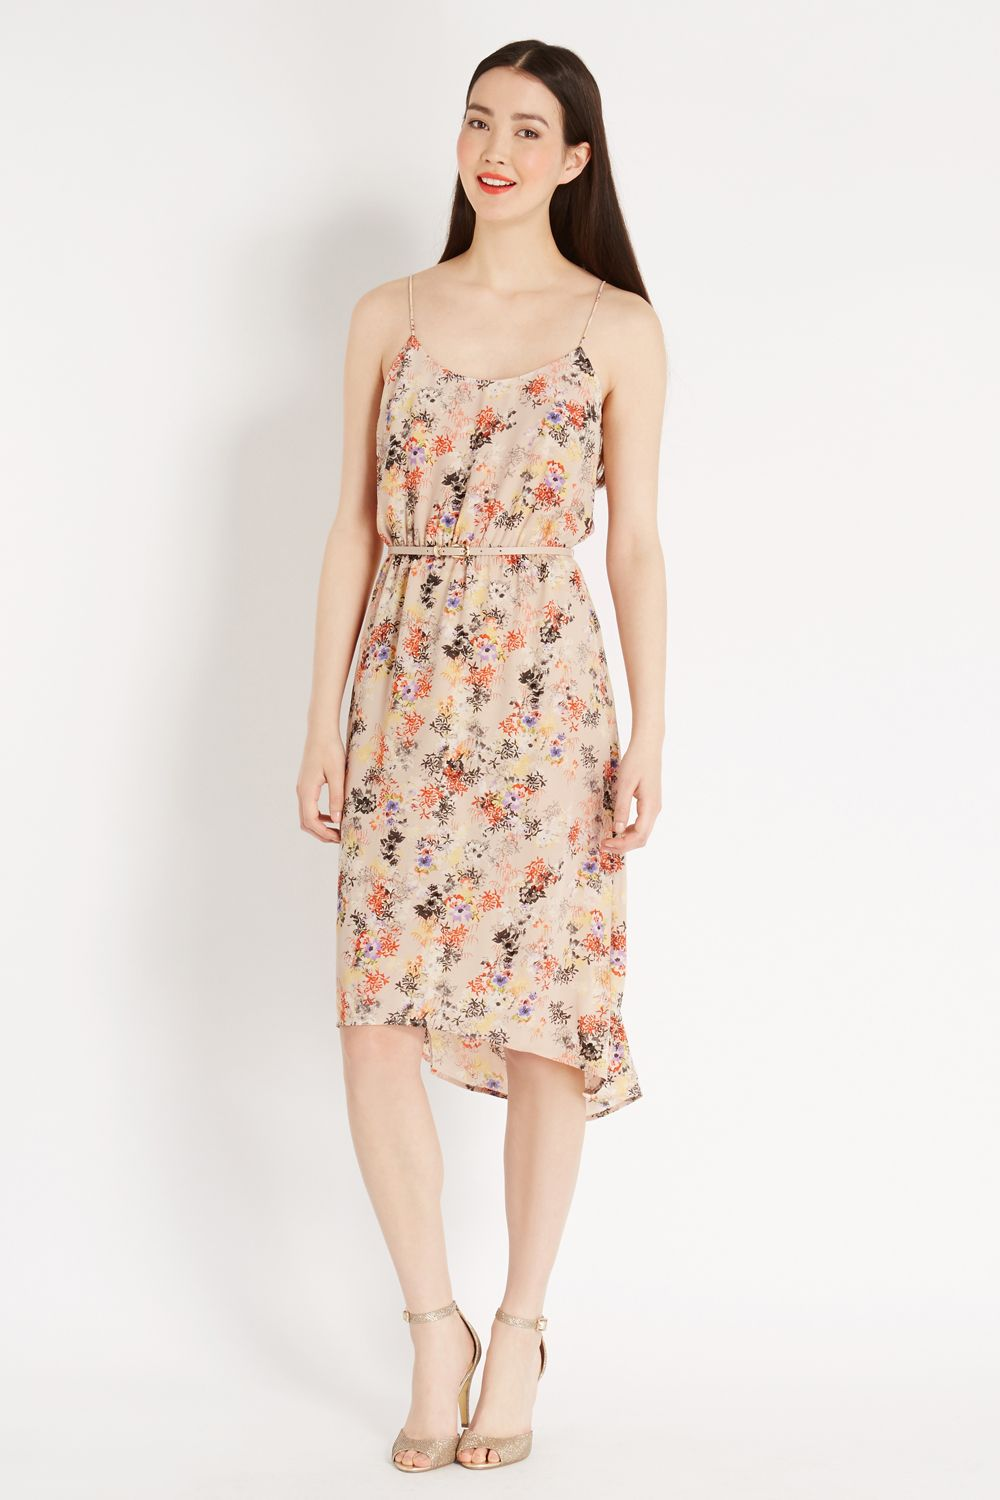 Bonsai cami midi dress